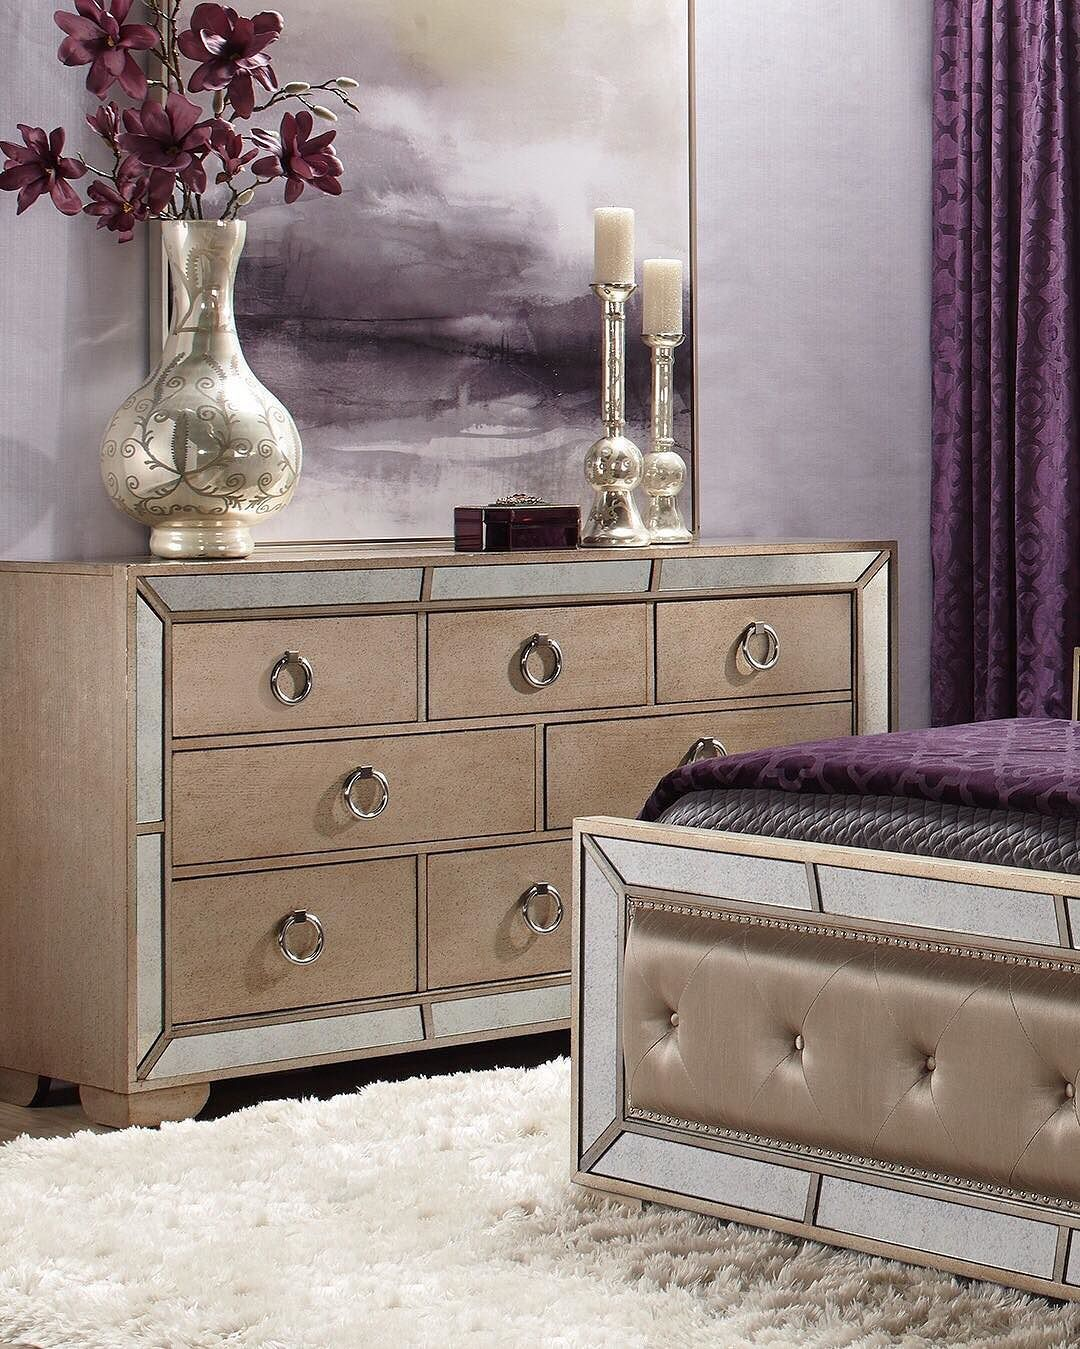 Get To Know The Ava Collection Antique Mirrored Elegance